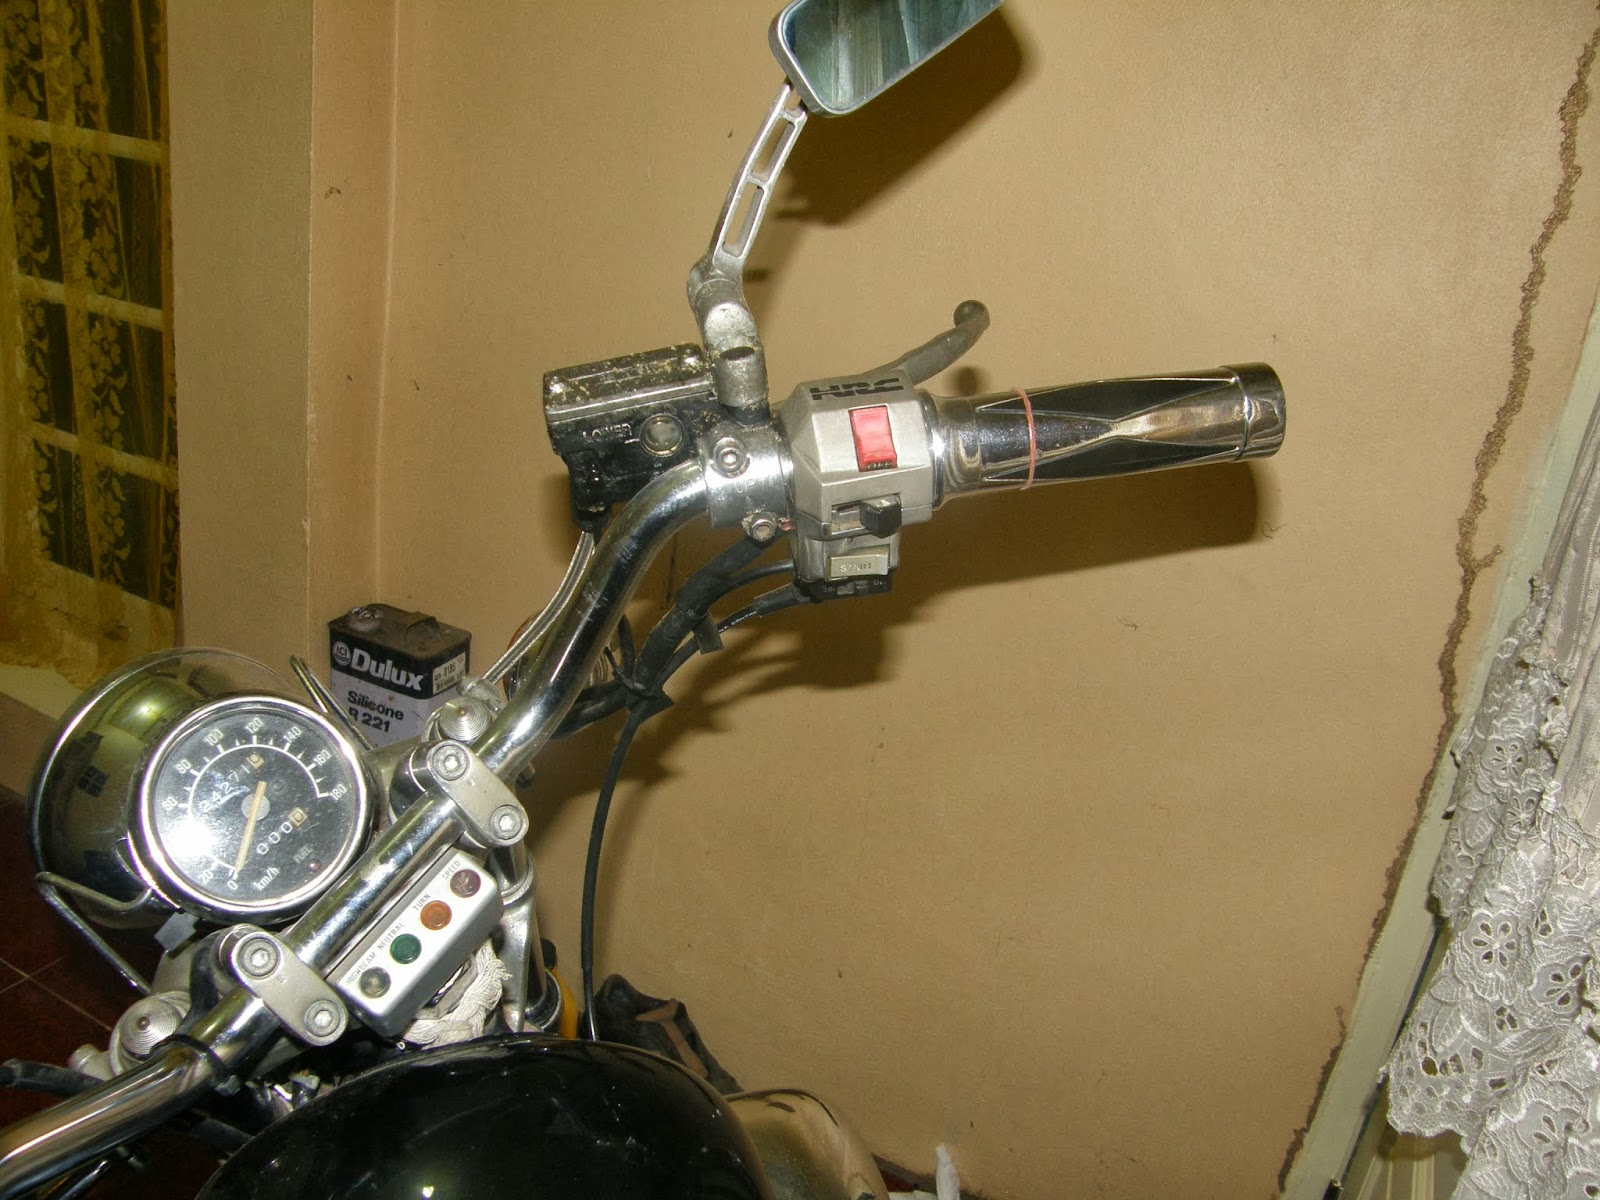 Virago Xv400 Parts Pics And Contacts Yamaha 535 Xv500k Color Wiring Schematic How To Build A Voltage Regulator